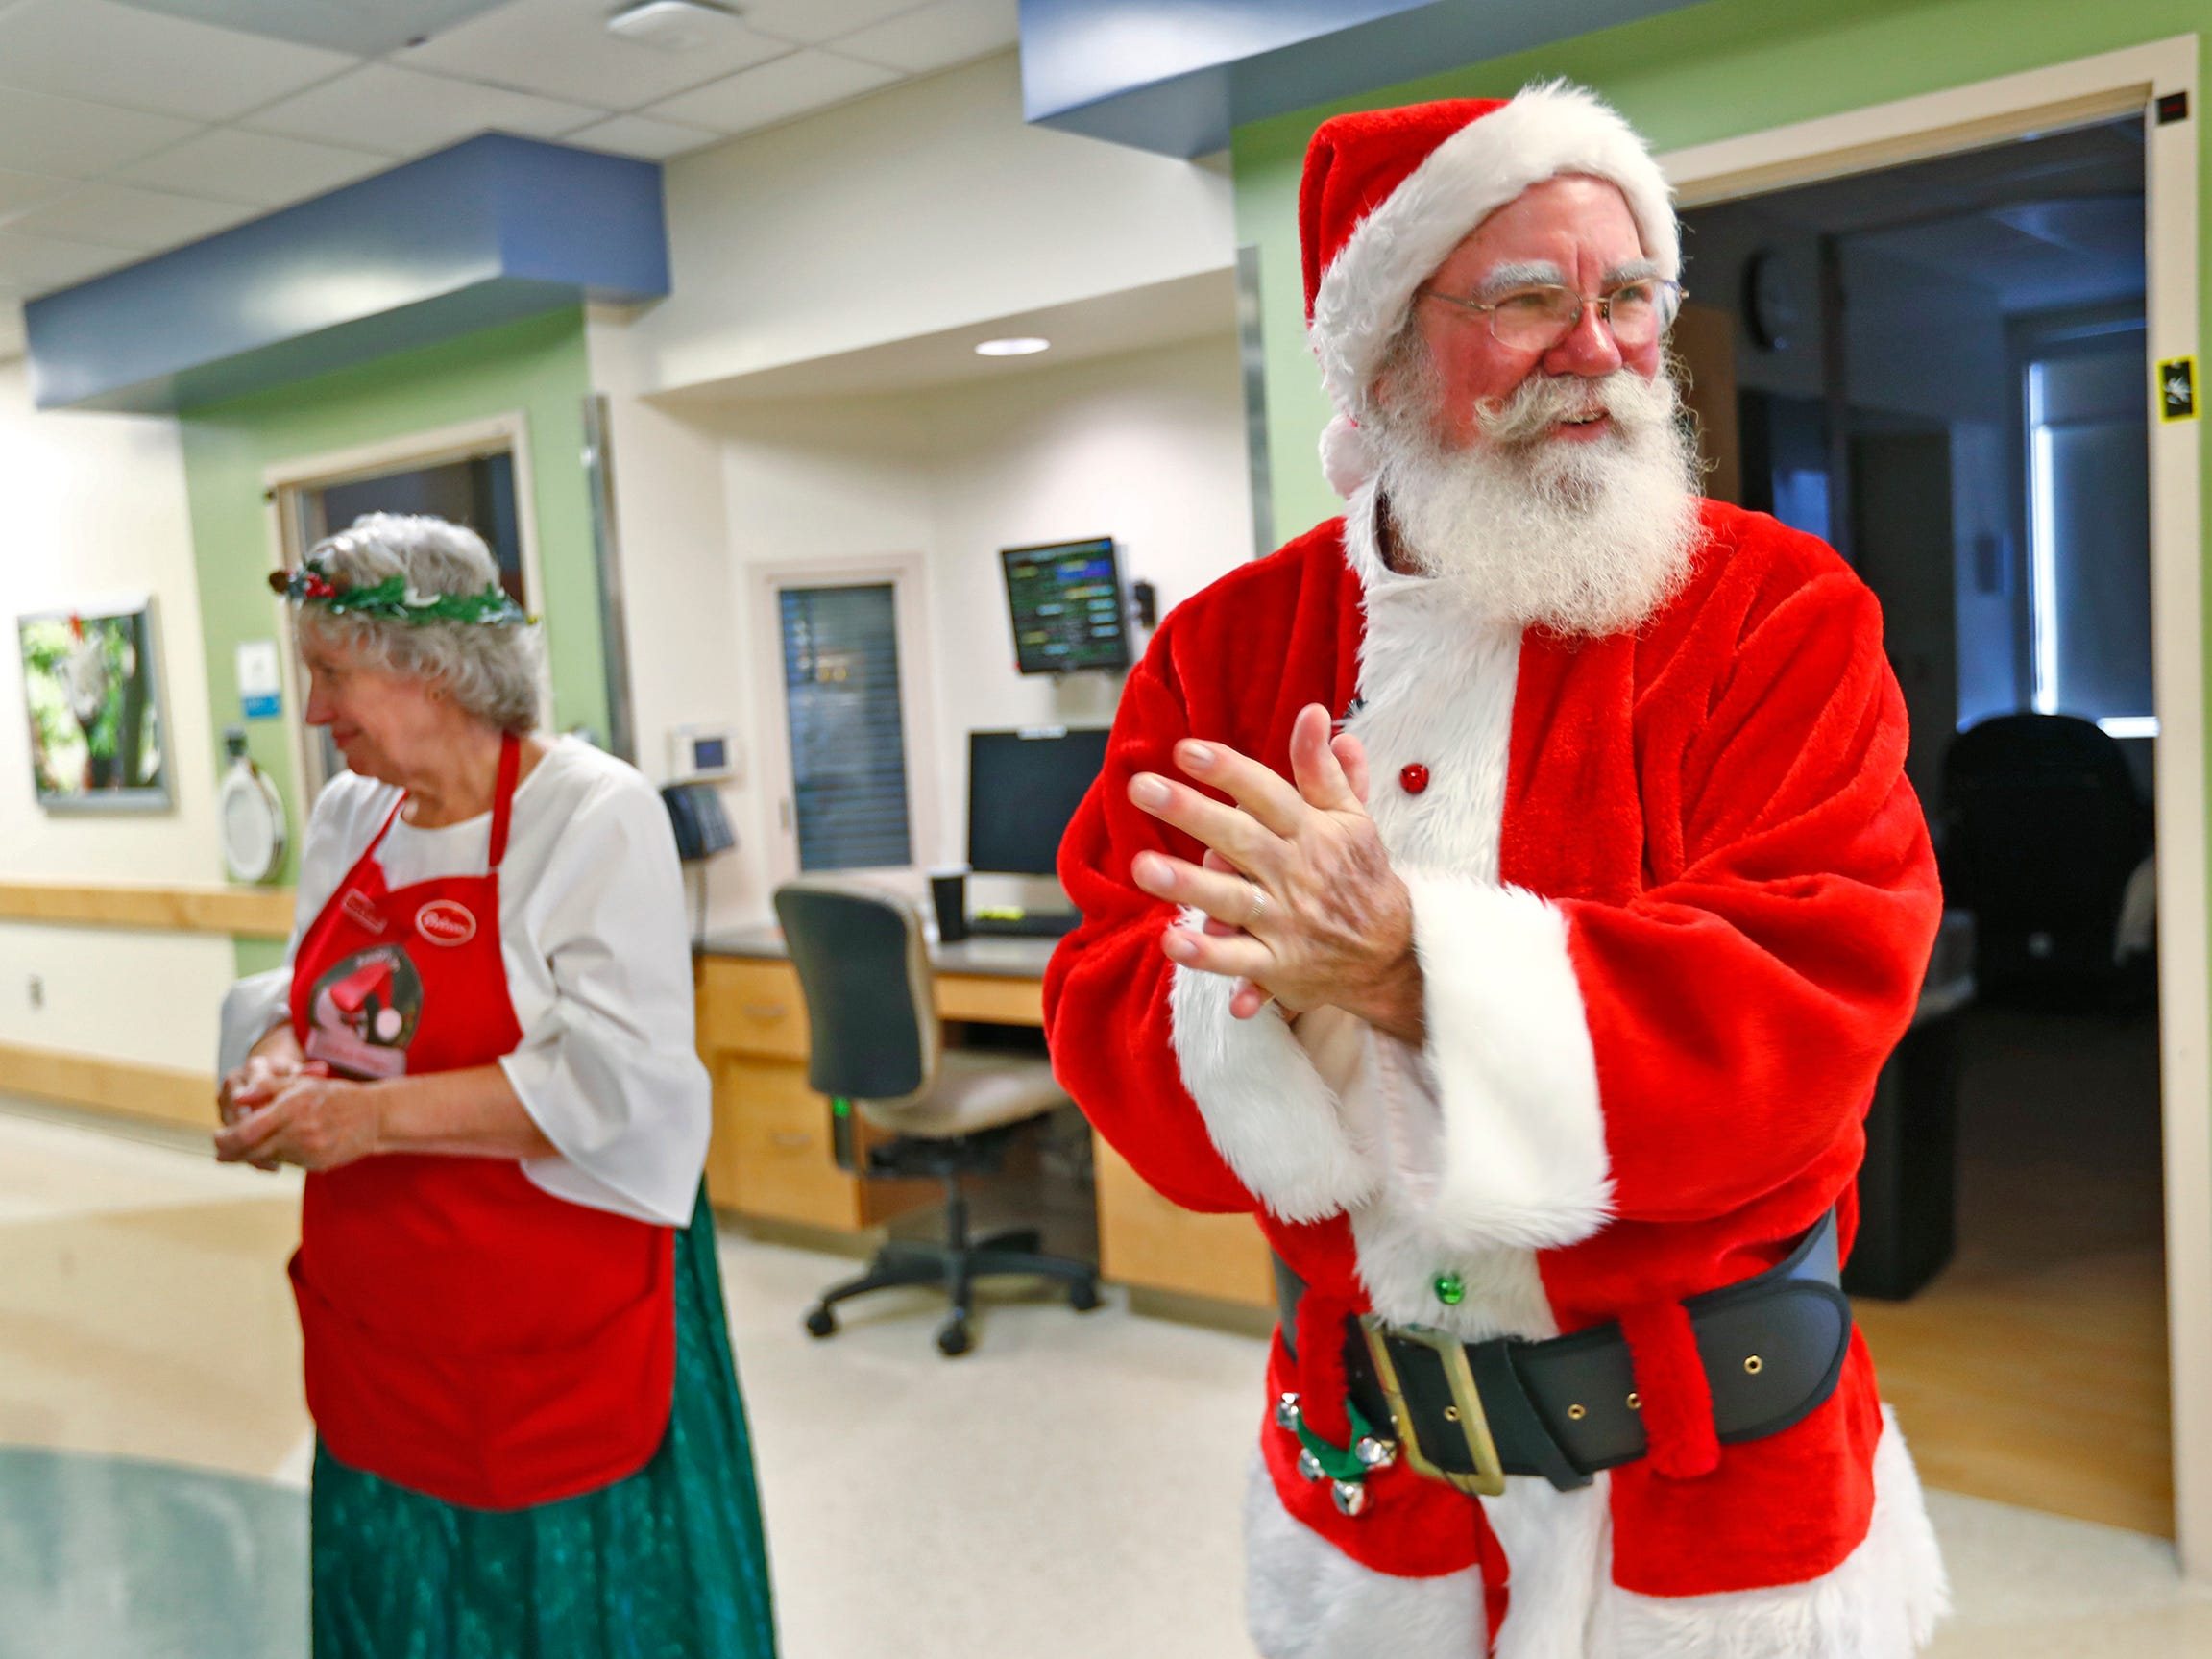 Santa and Mrs. Claus, aka Bill and Kathy Armstrong, prepare to go into another child's hospital room as they visit with kids at Riley Children's Health, Thursday, Dec. 13, 2018.